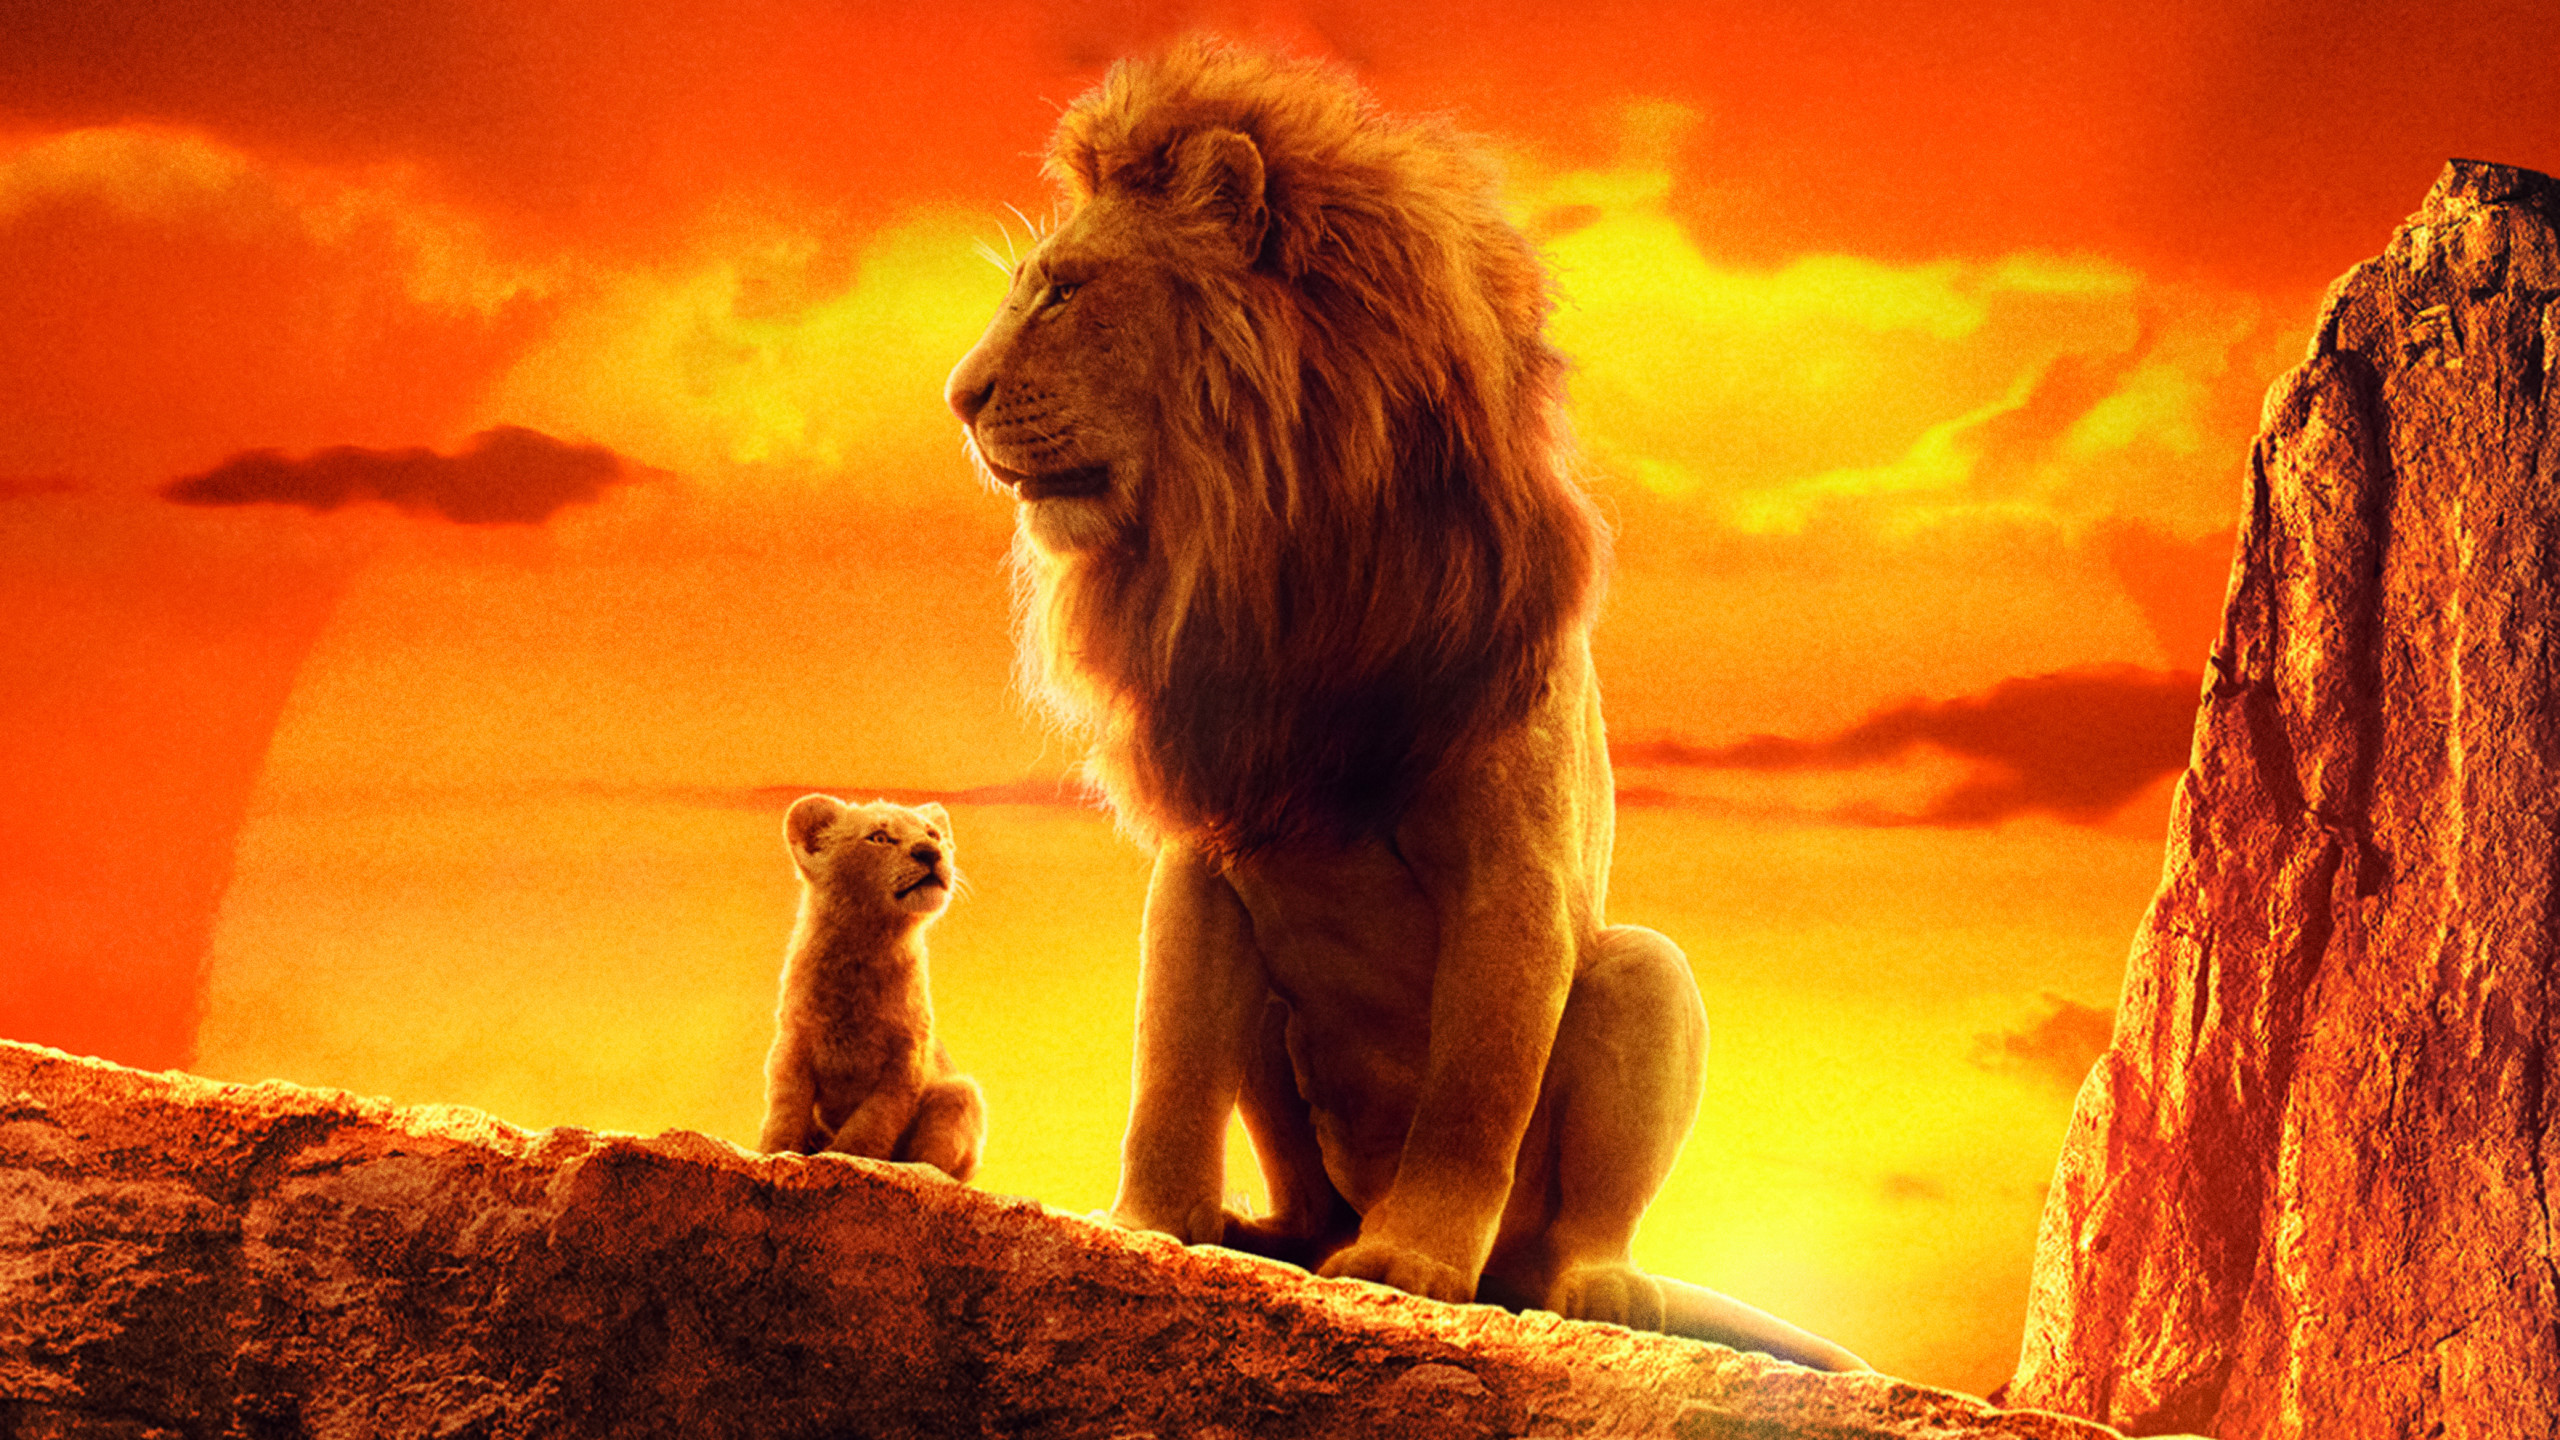 Lion King Wallpaper 4k , HD Wallpaper & Backgrounds